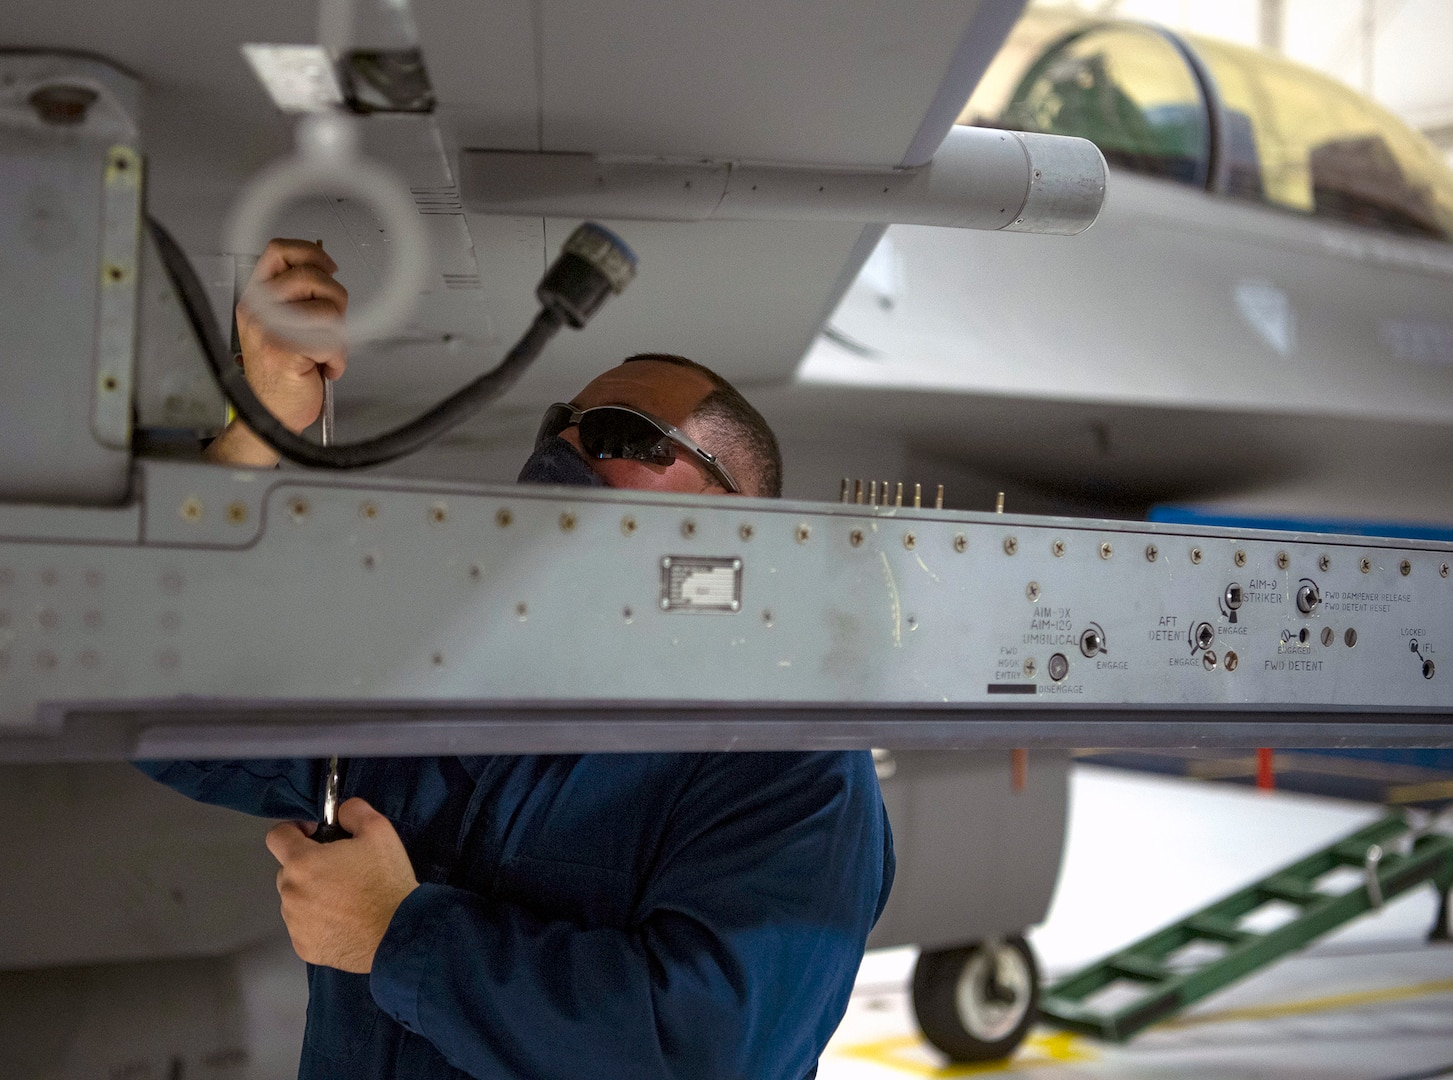 Tech. Sgt. Joseph Ramos, 149th Fighter Wing aircraft armament systems technician, removes a panel from an F-16 Fighting Falcon undergoing maintenance Nov. 30 at Joint Base San Antonio-Lackland.